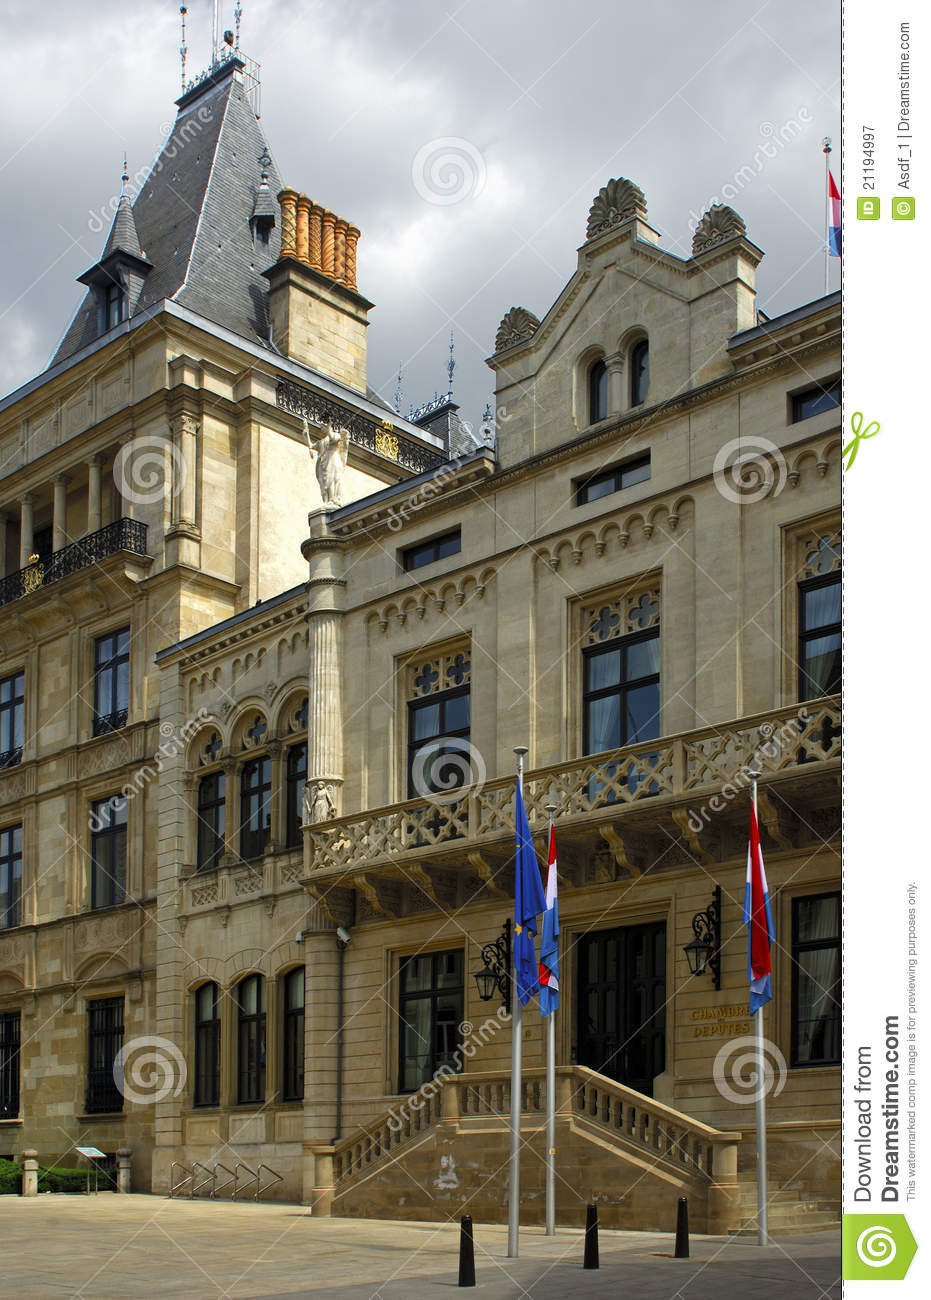 House of representatives in Luxembourg